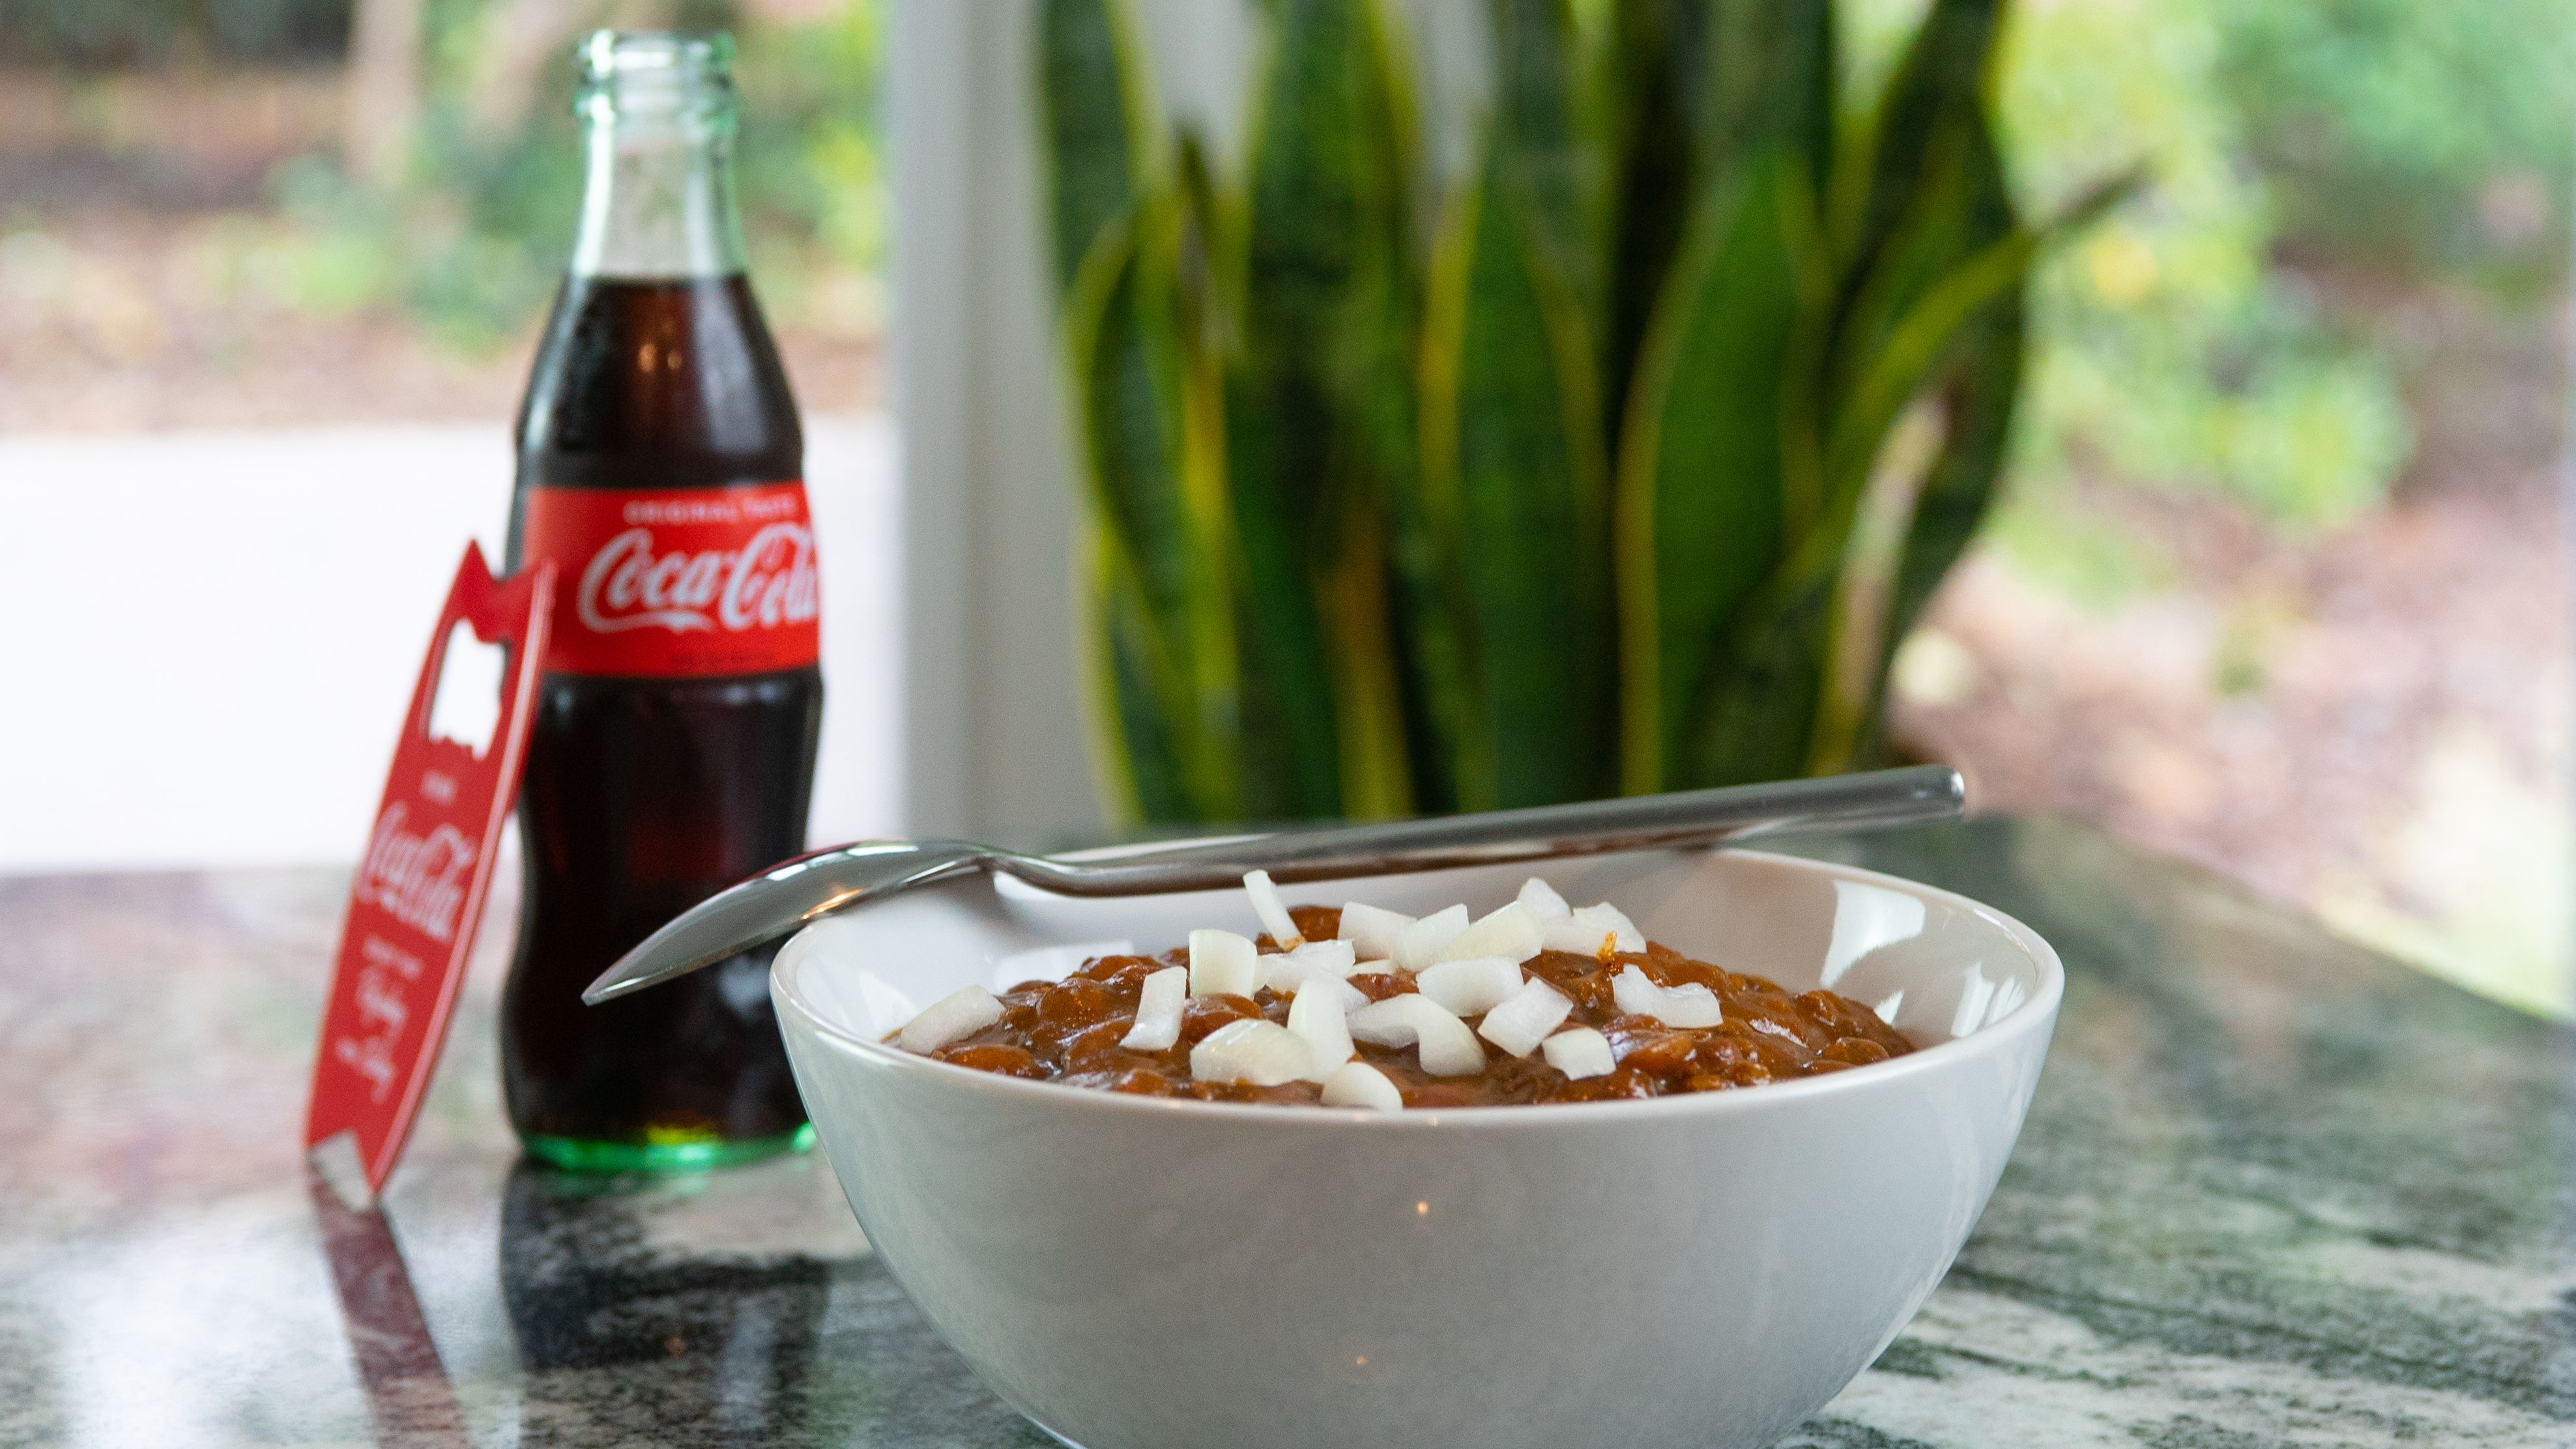 Chili Infused with Coca-Cola